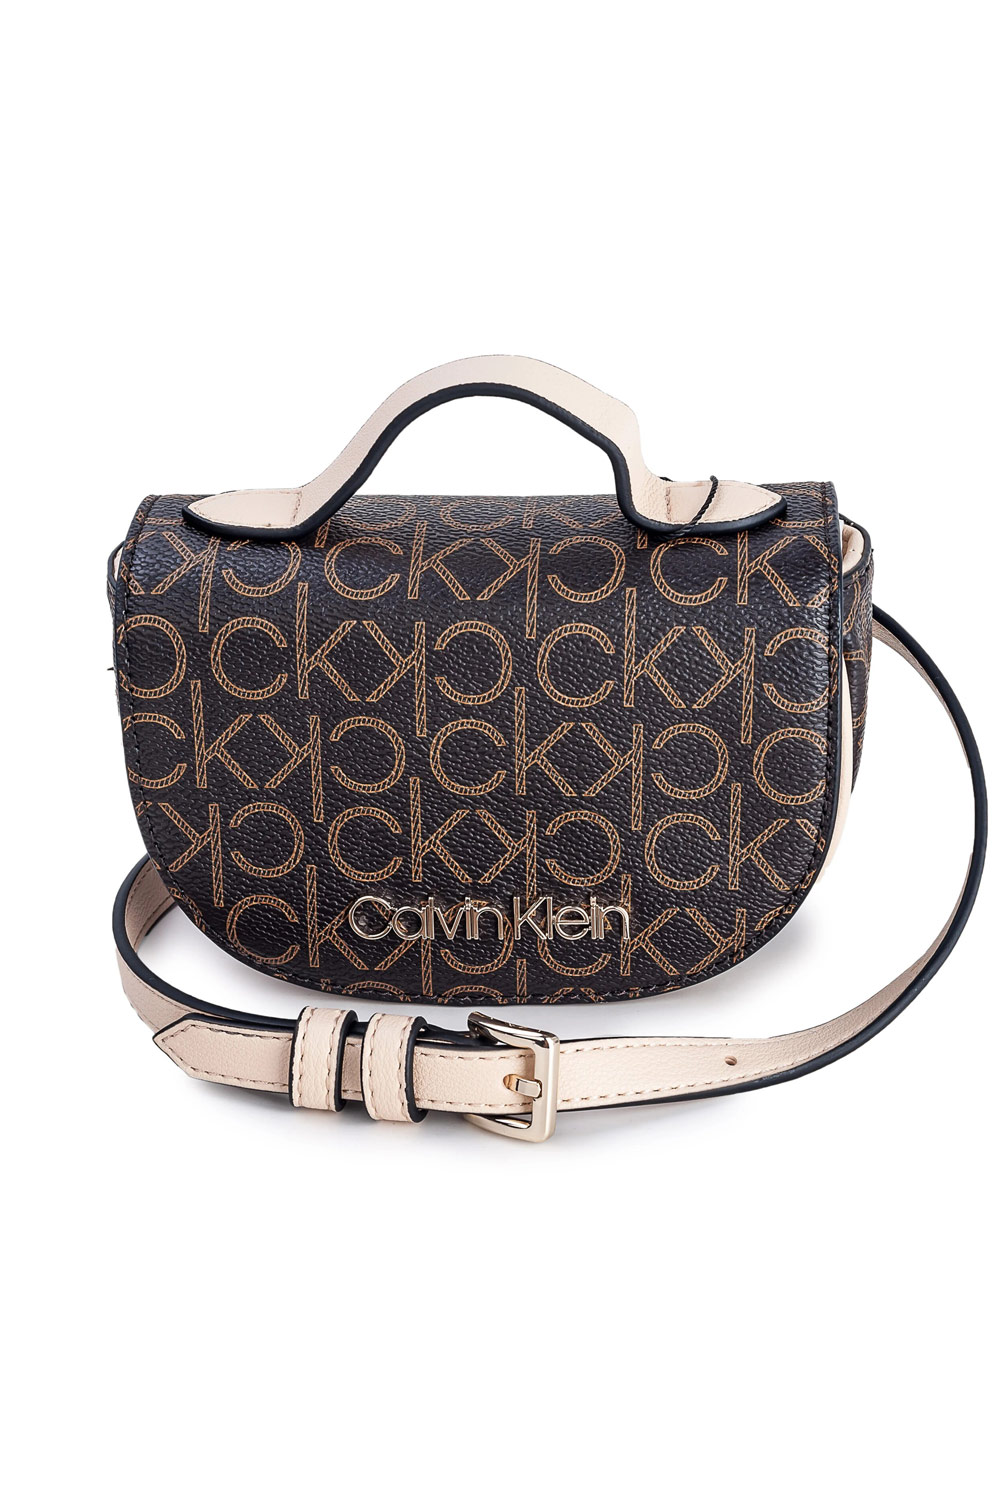 Calvin Klein brown bum bag Saddle Balt Bag